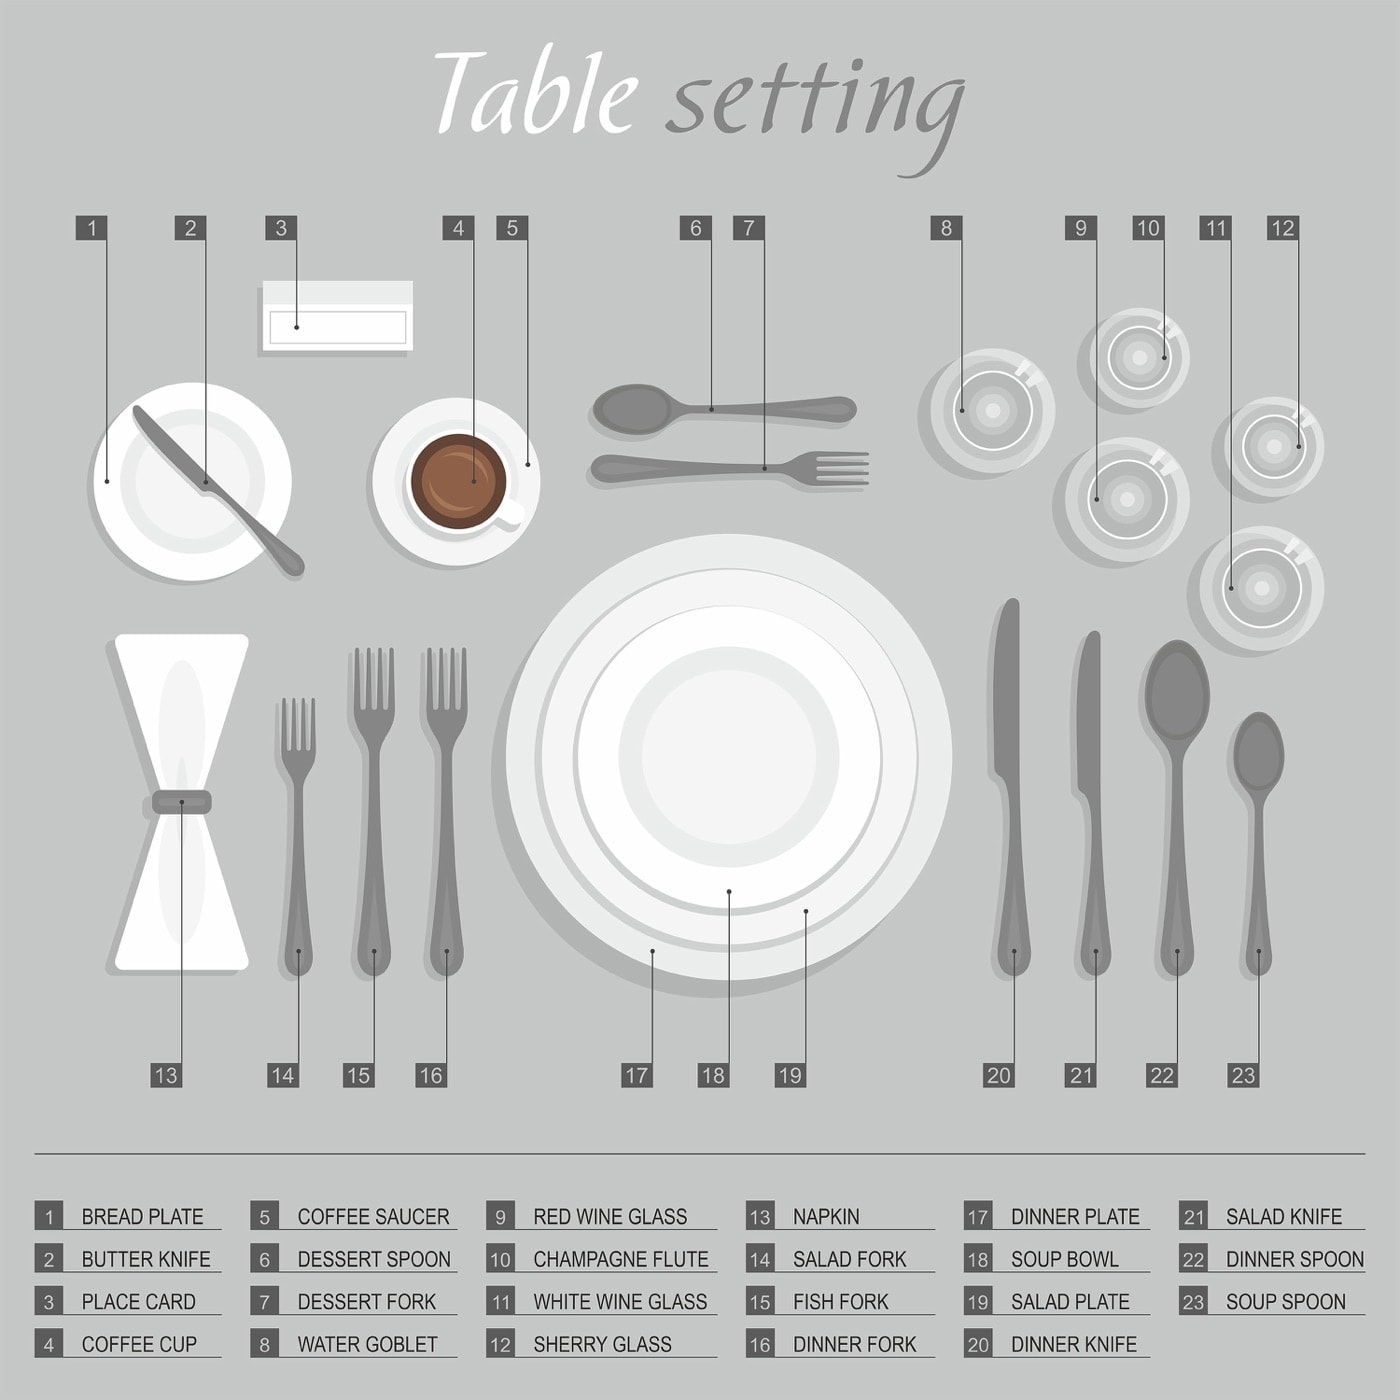 Table Setting Etiquette Infographic